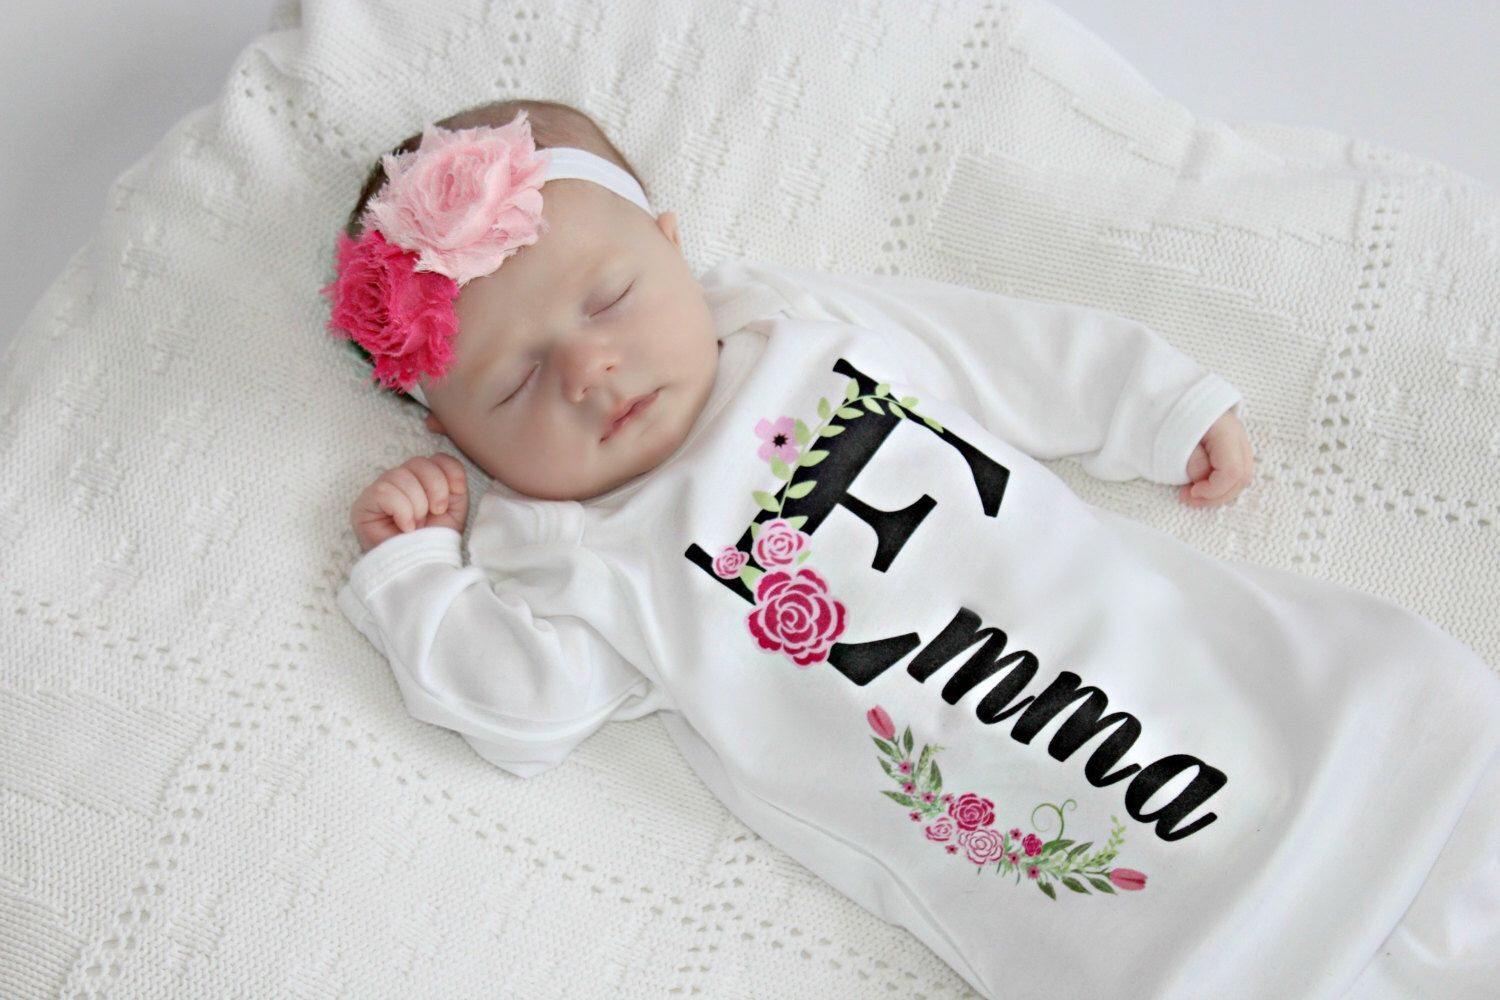 Personalized baby gift girl newborn girl coming home outfit personalized baby gift girl newborn girl coming home outfit personalized baby girl clothes baby clothes infant gown baby outfit by sassylocks on etsy negle Gallery